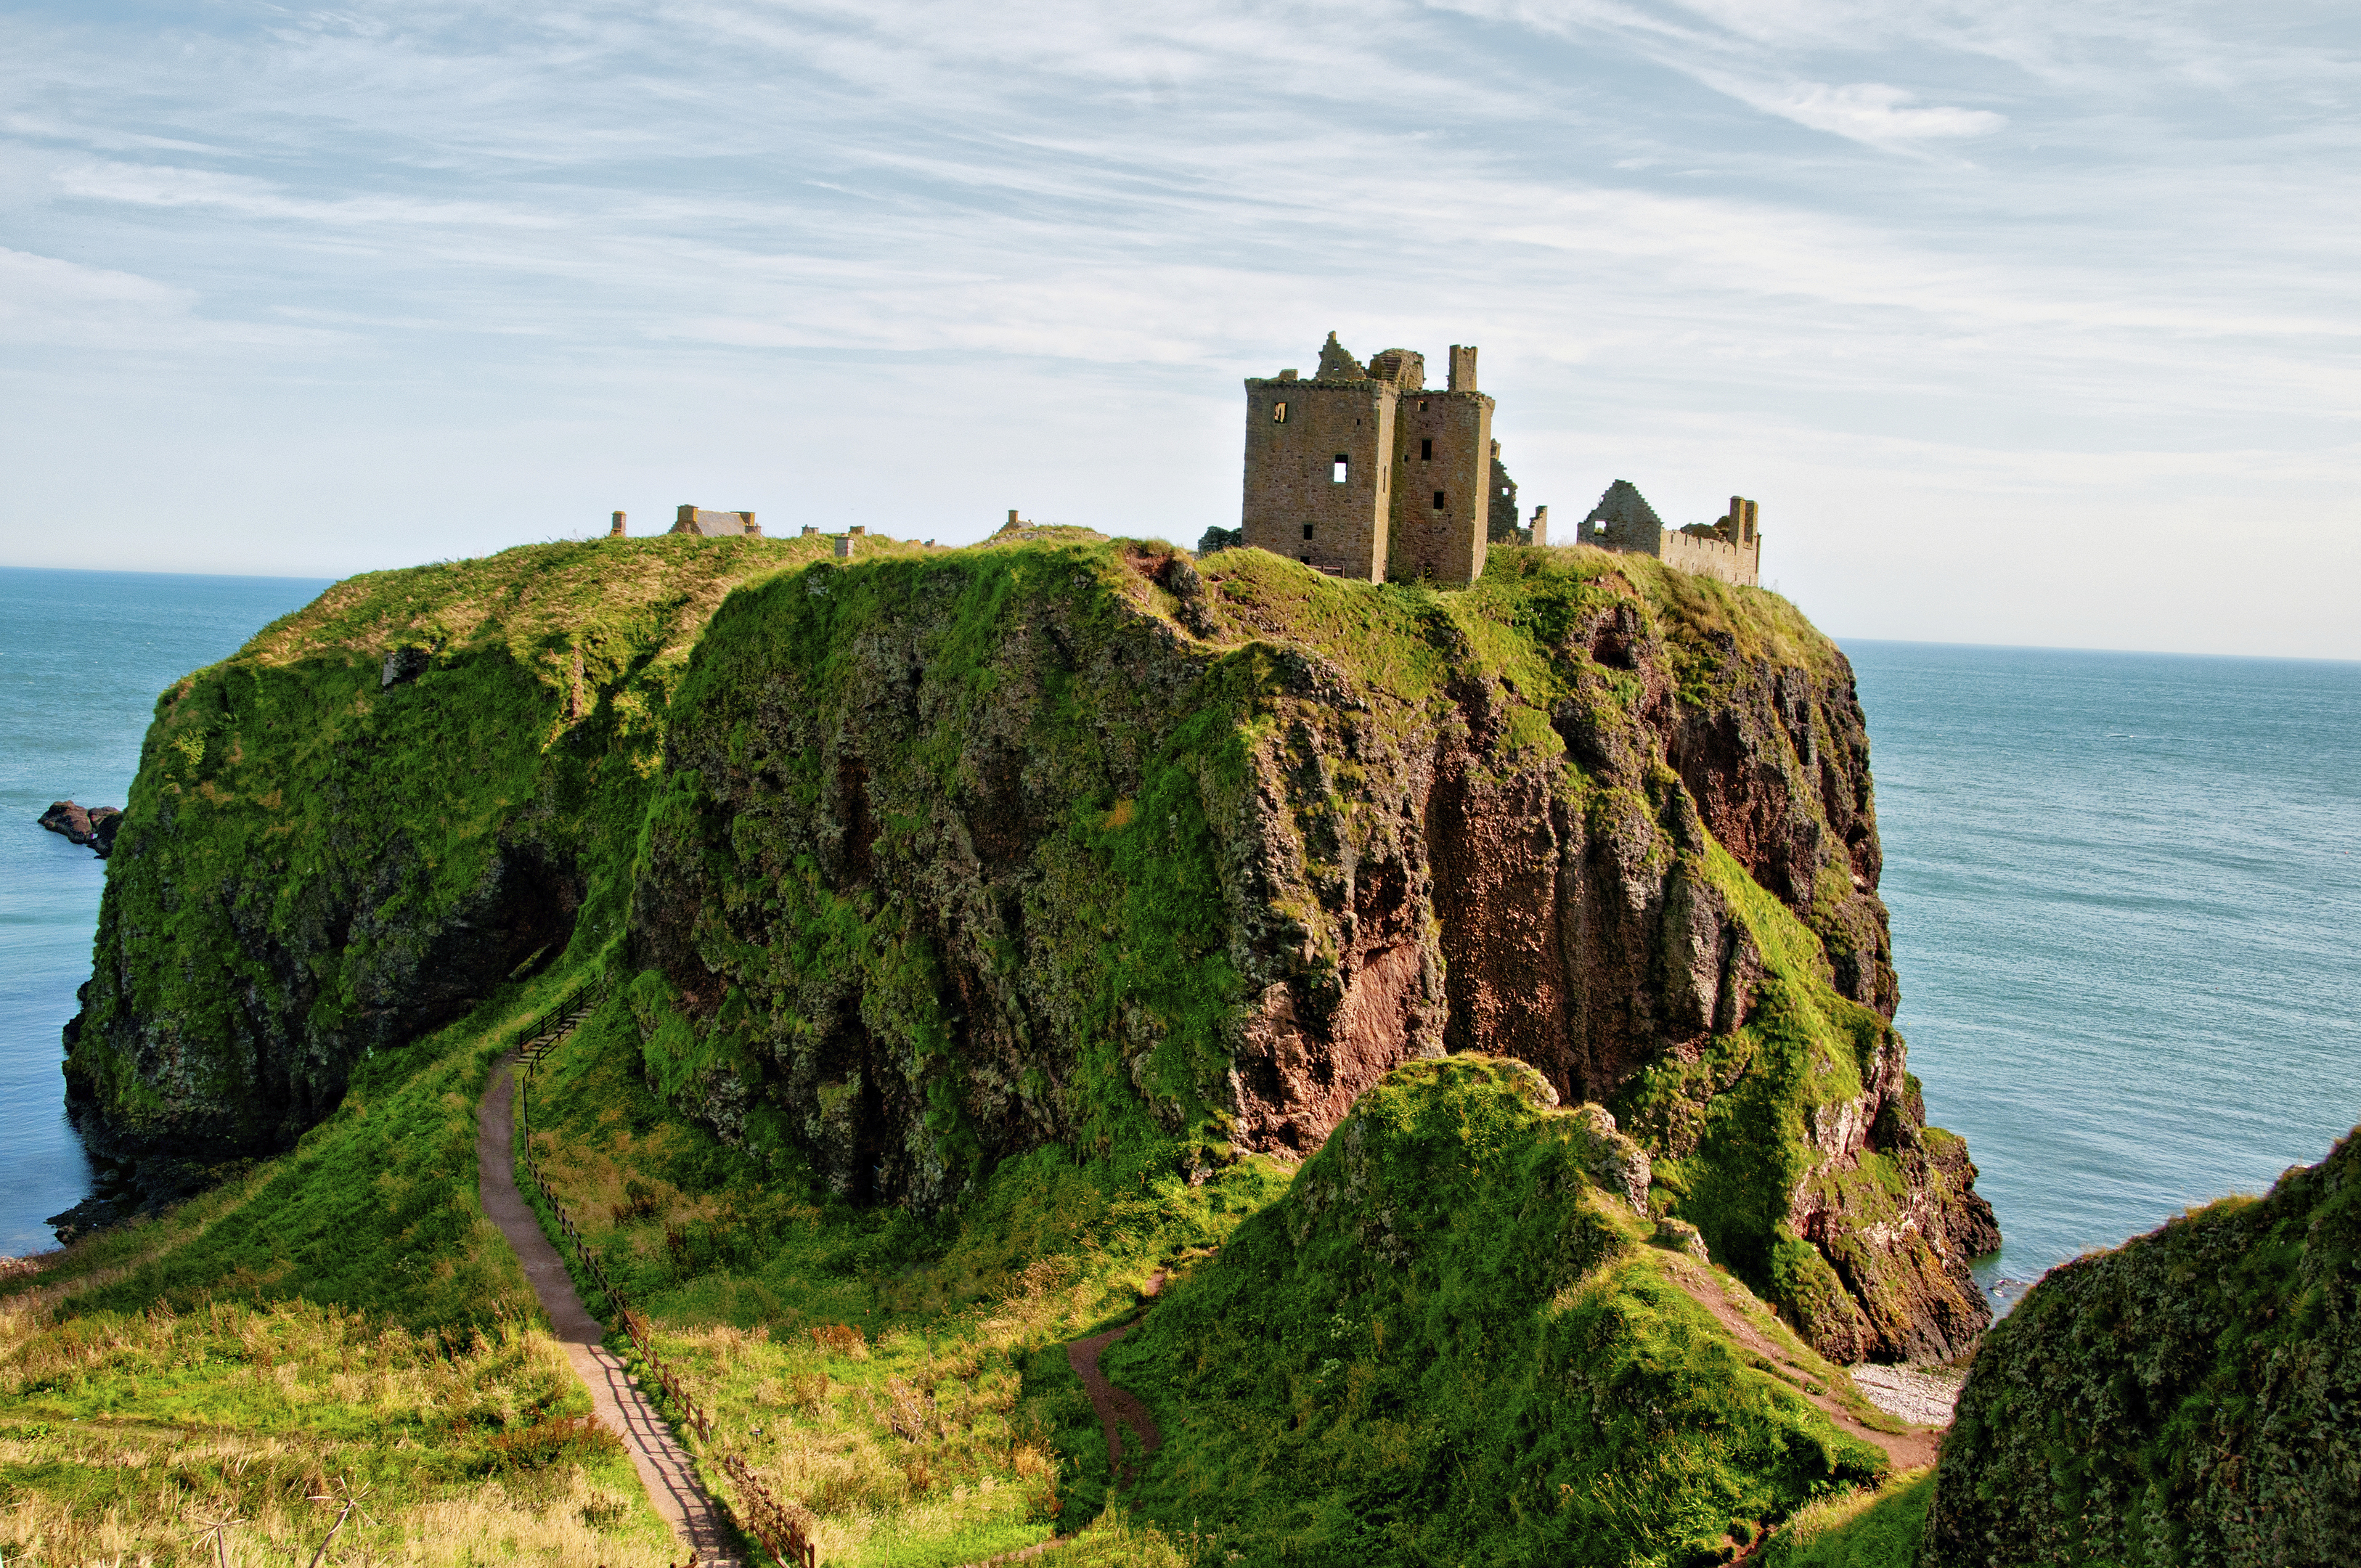 The stunning scenery at Dunnottar Castle, which is around 3km south of Stonehaven.